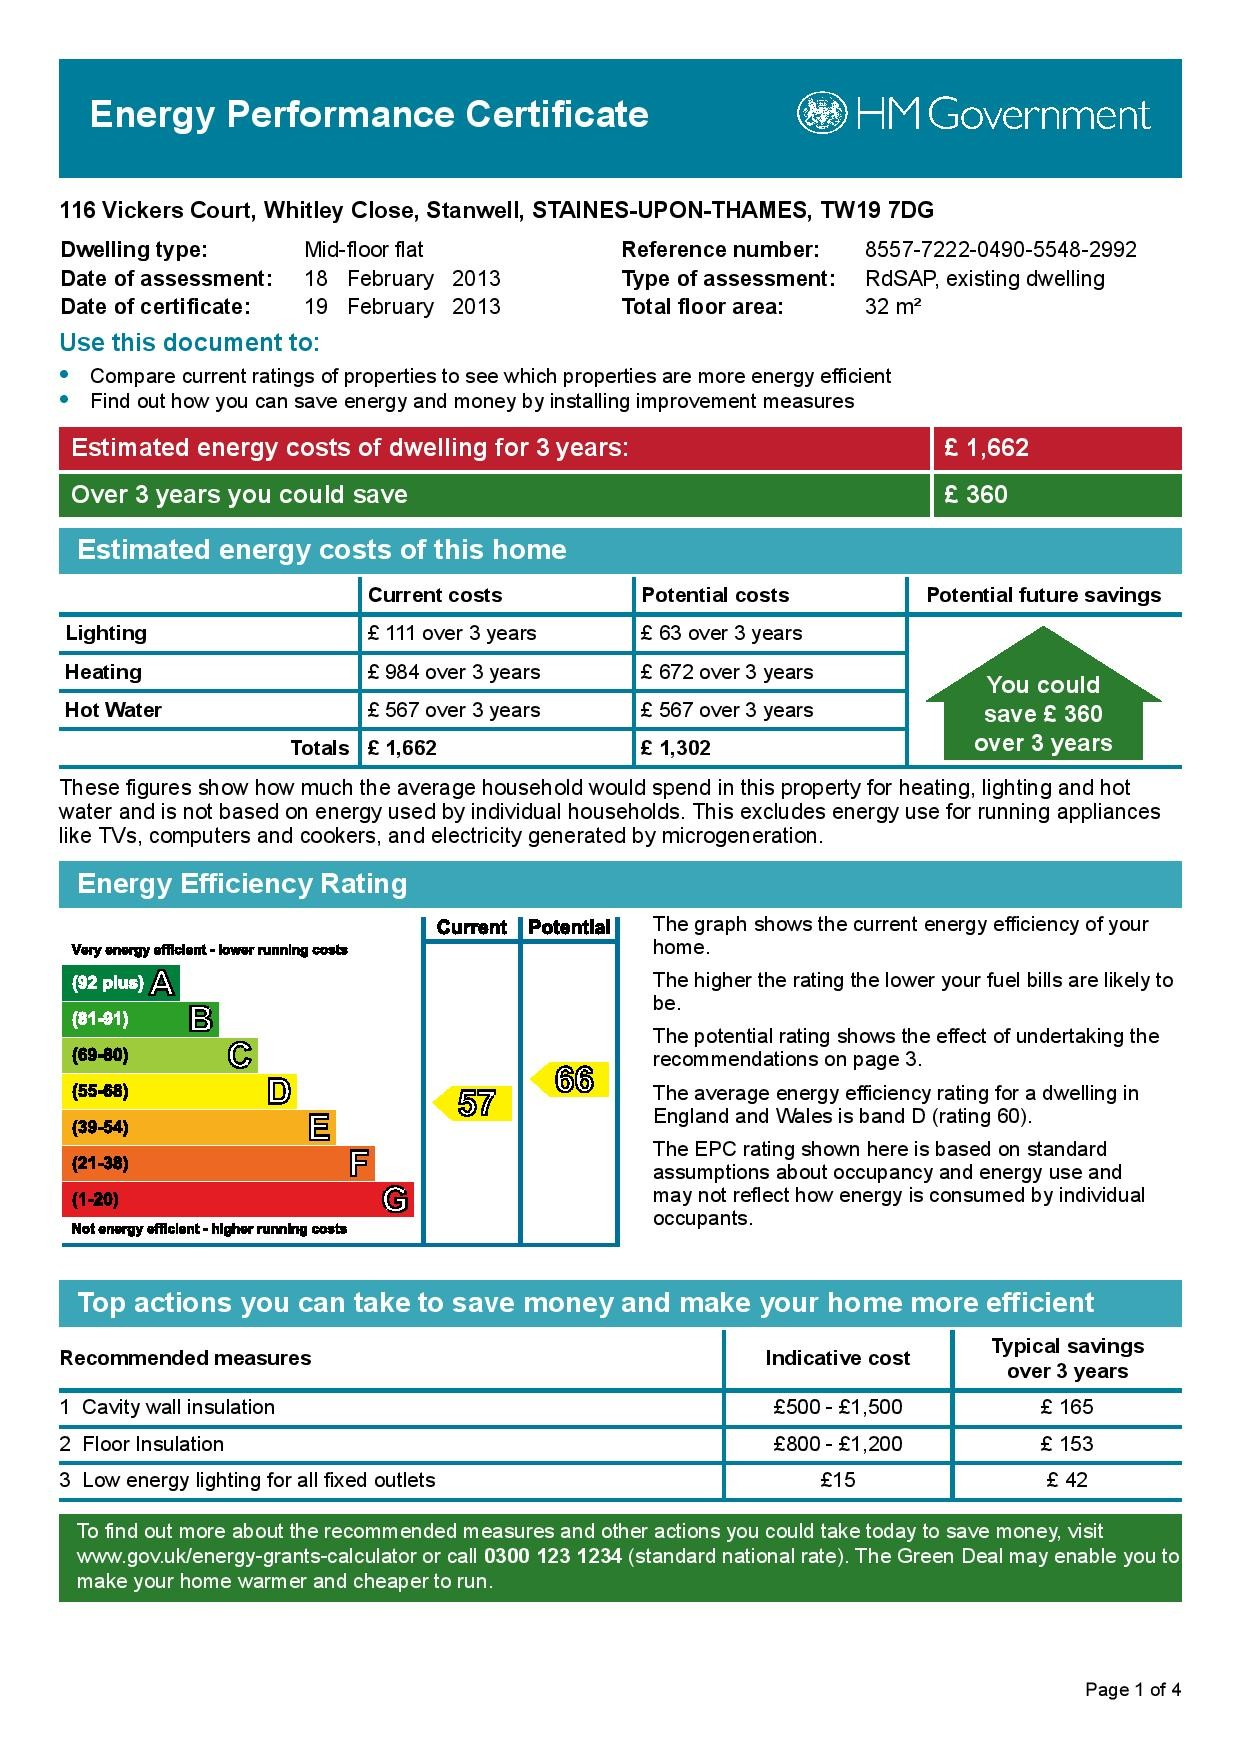 EPC Graph for 116 Vickers Court, Whitley Close, Stanwell, Middlesex TW19 7DG